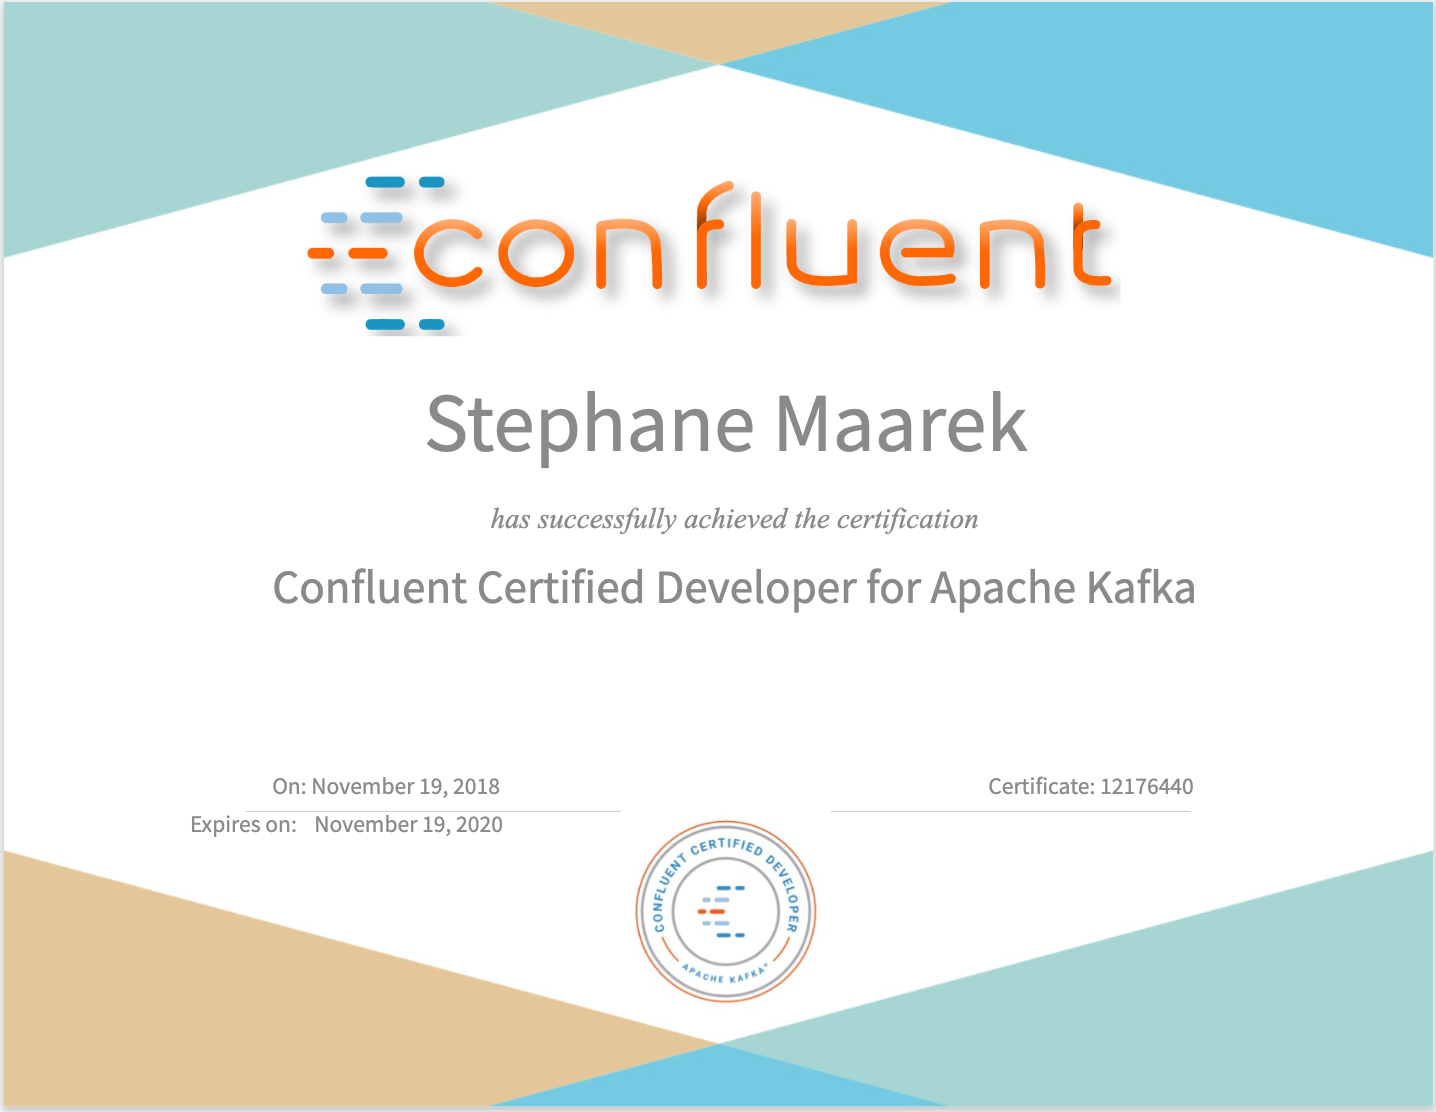 How to Prepare for the Confluent Certified Developer for